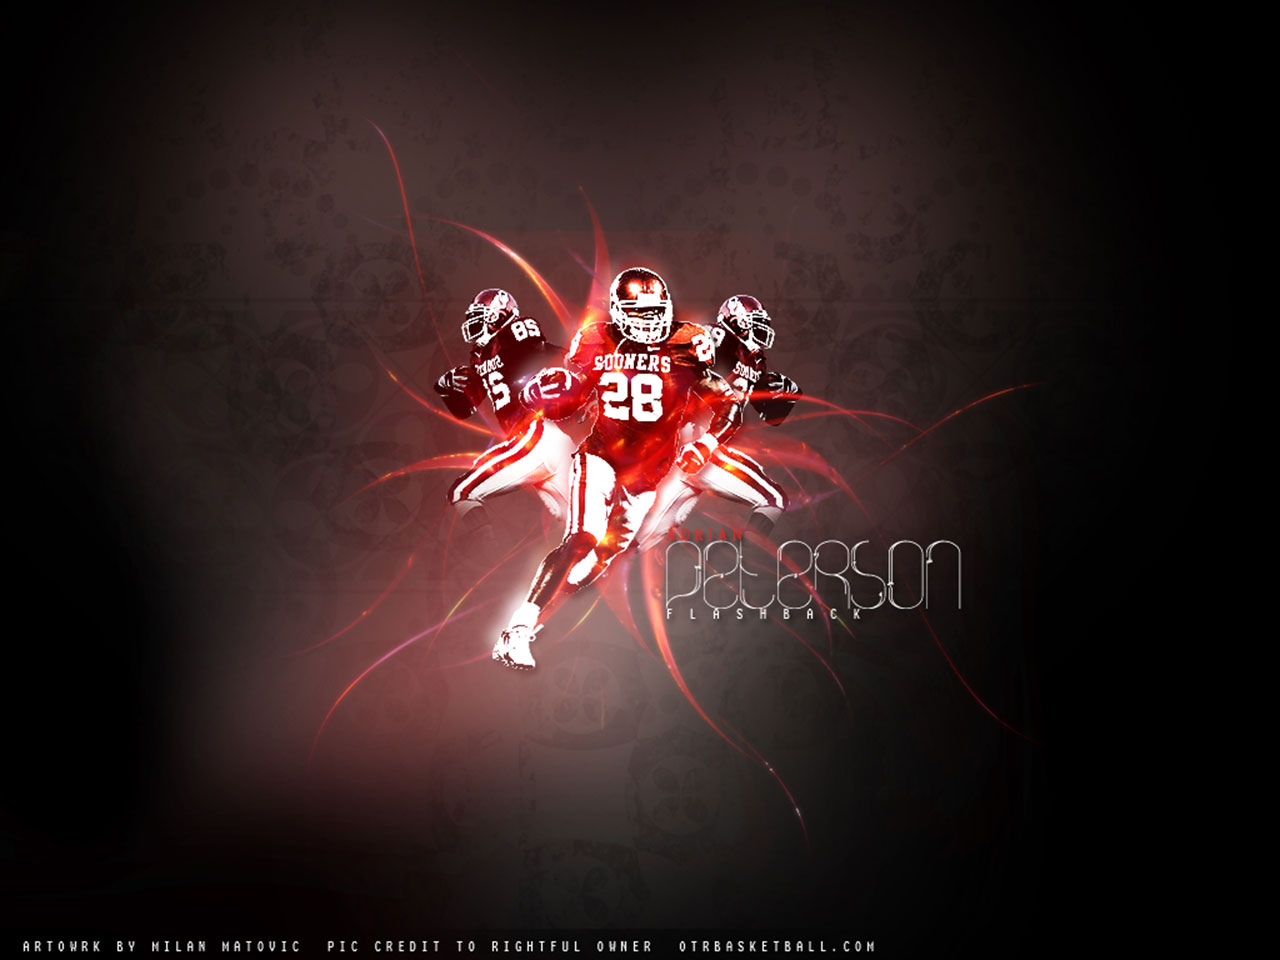 Adrian Peterson Oklahoma Sooners Wallpaperjpg 1280x960